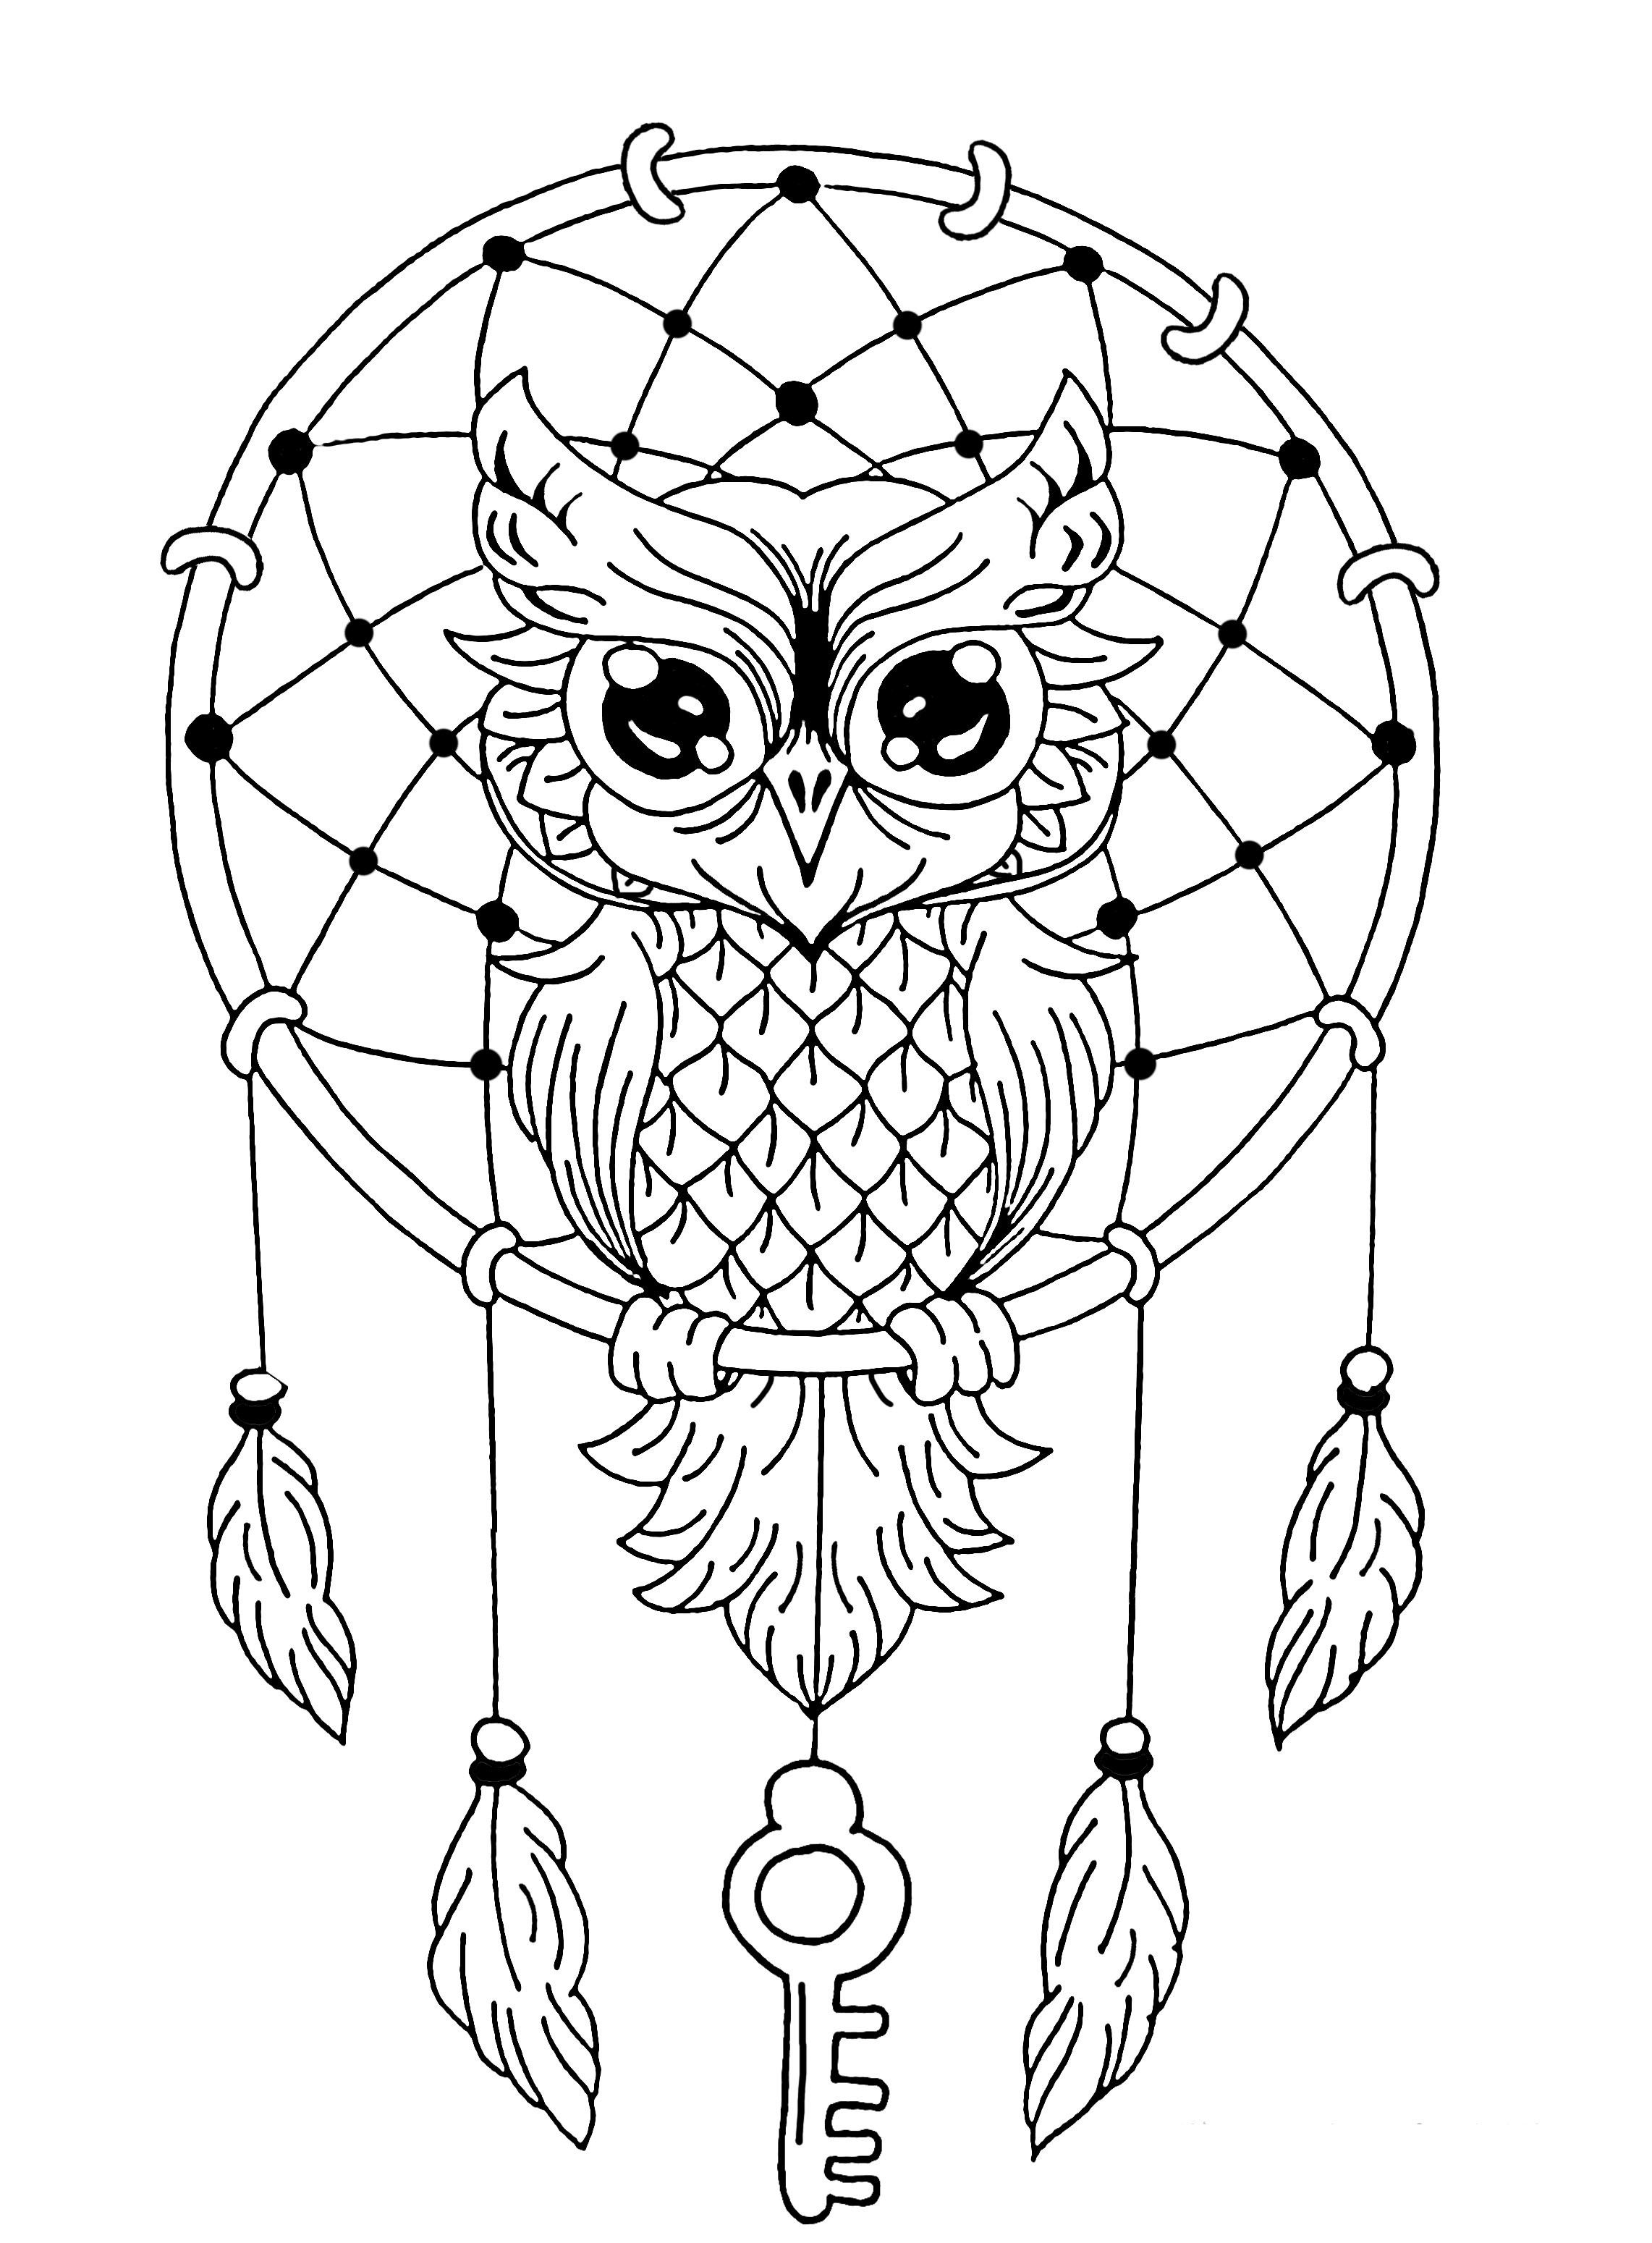 29 Last Concept Coloring Mandala Owl Owl coloring pages